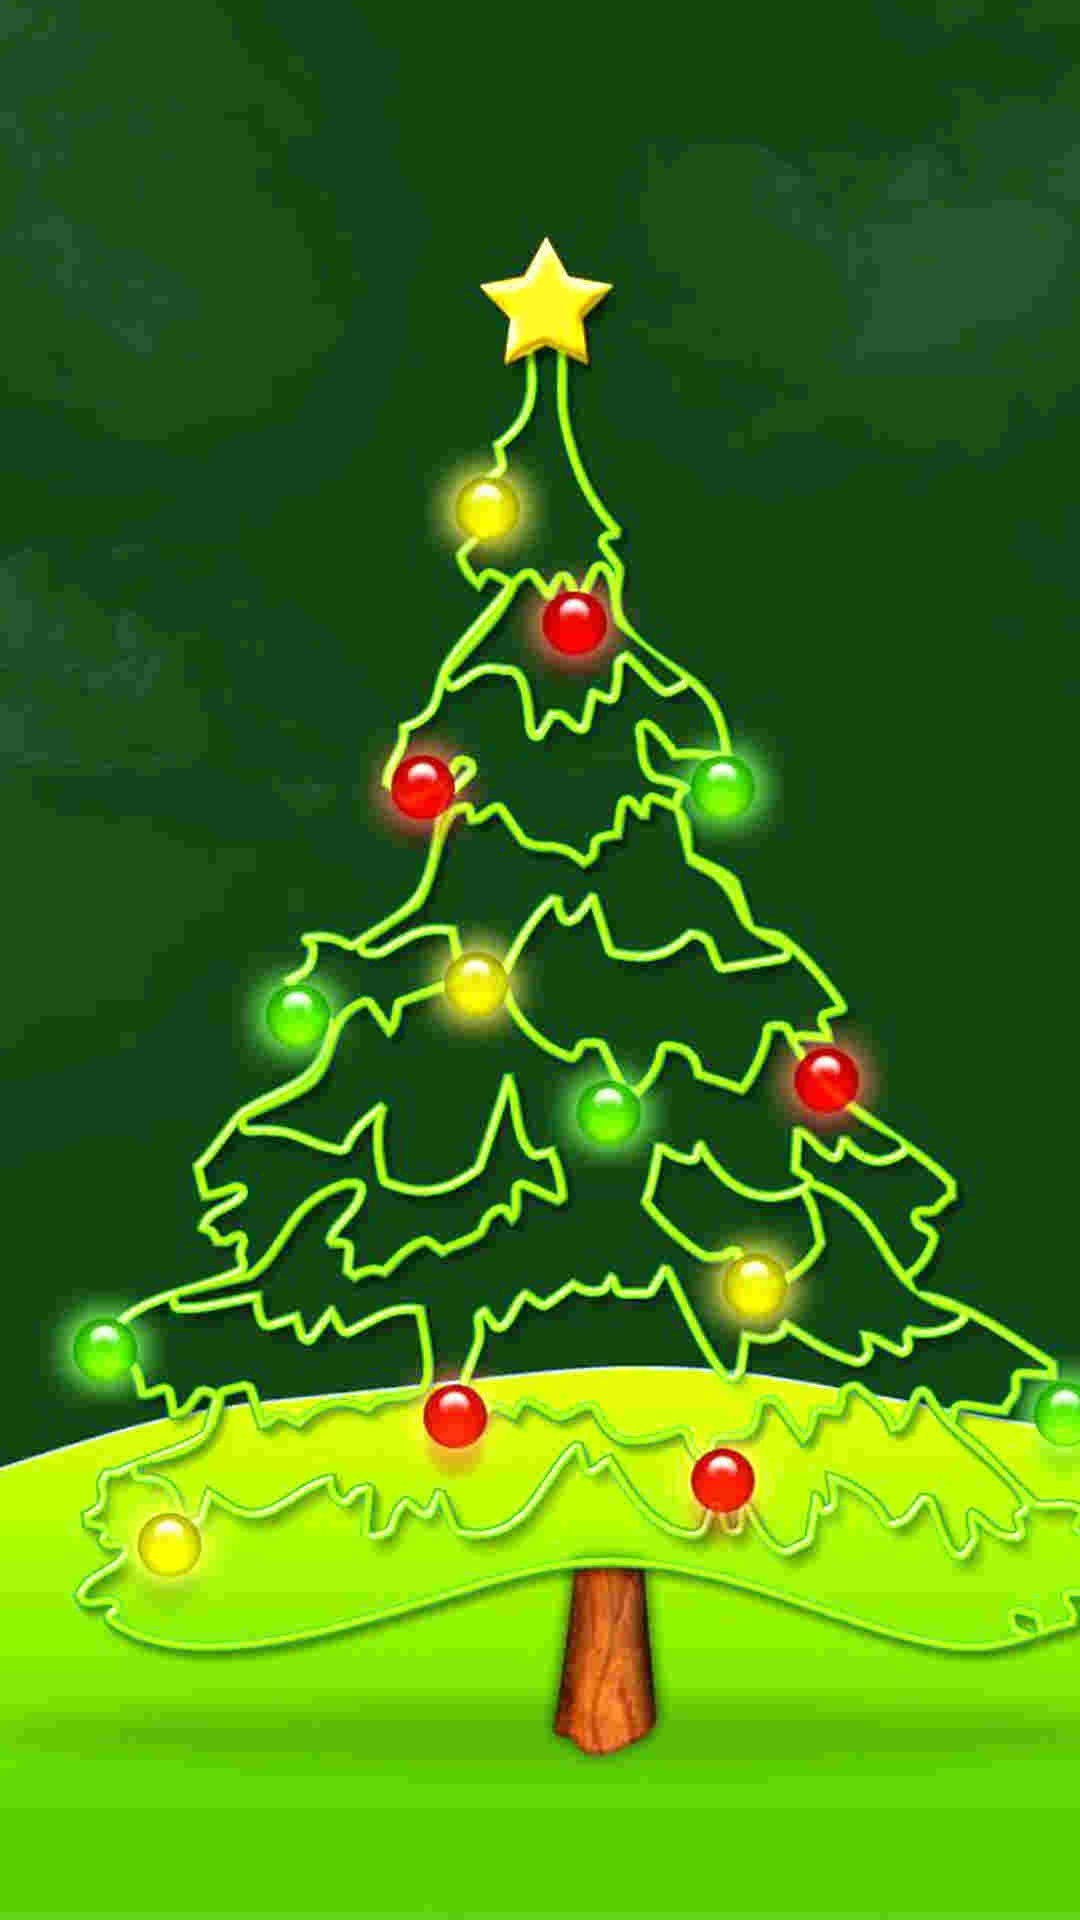 1080x1920 pink light 2014 christmas tree iphone 6 plus wallpaper nature 2014 christmas